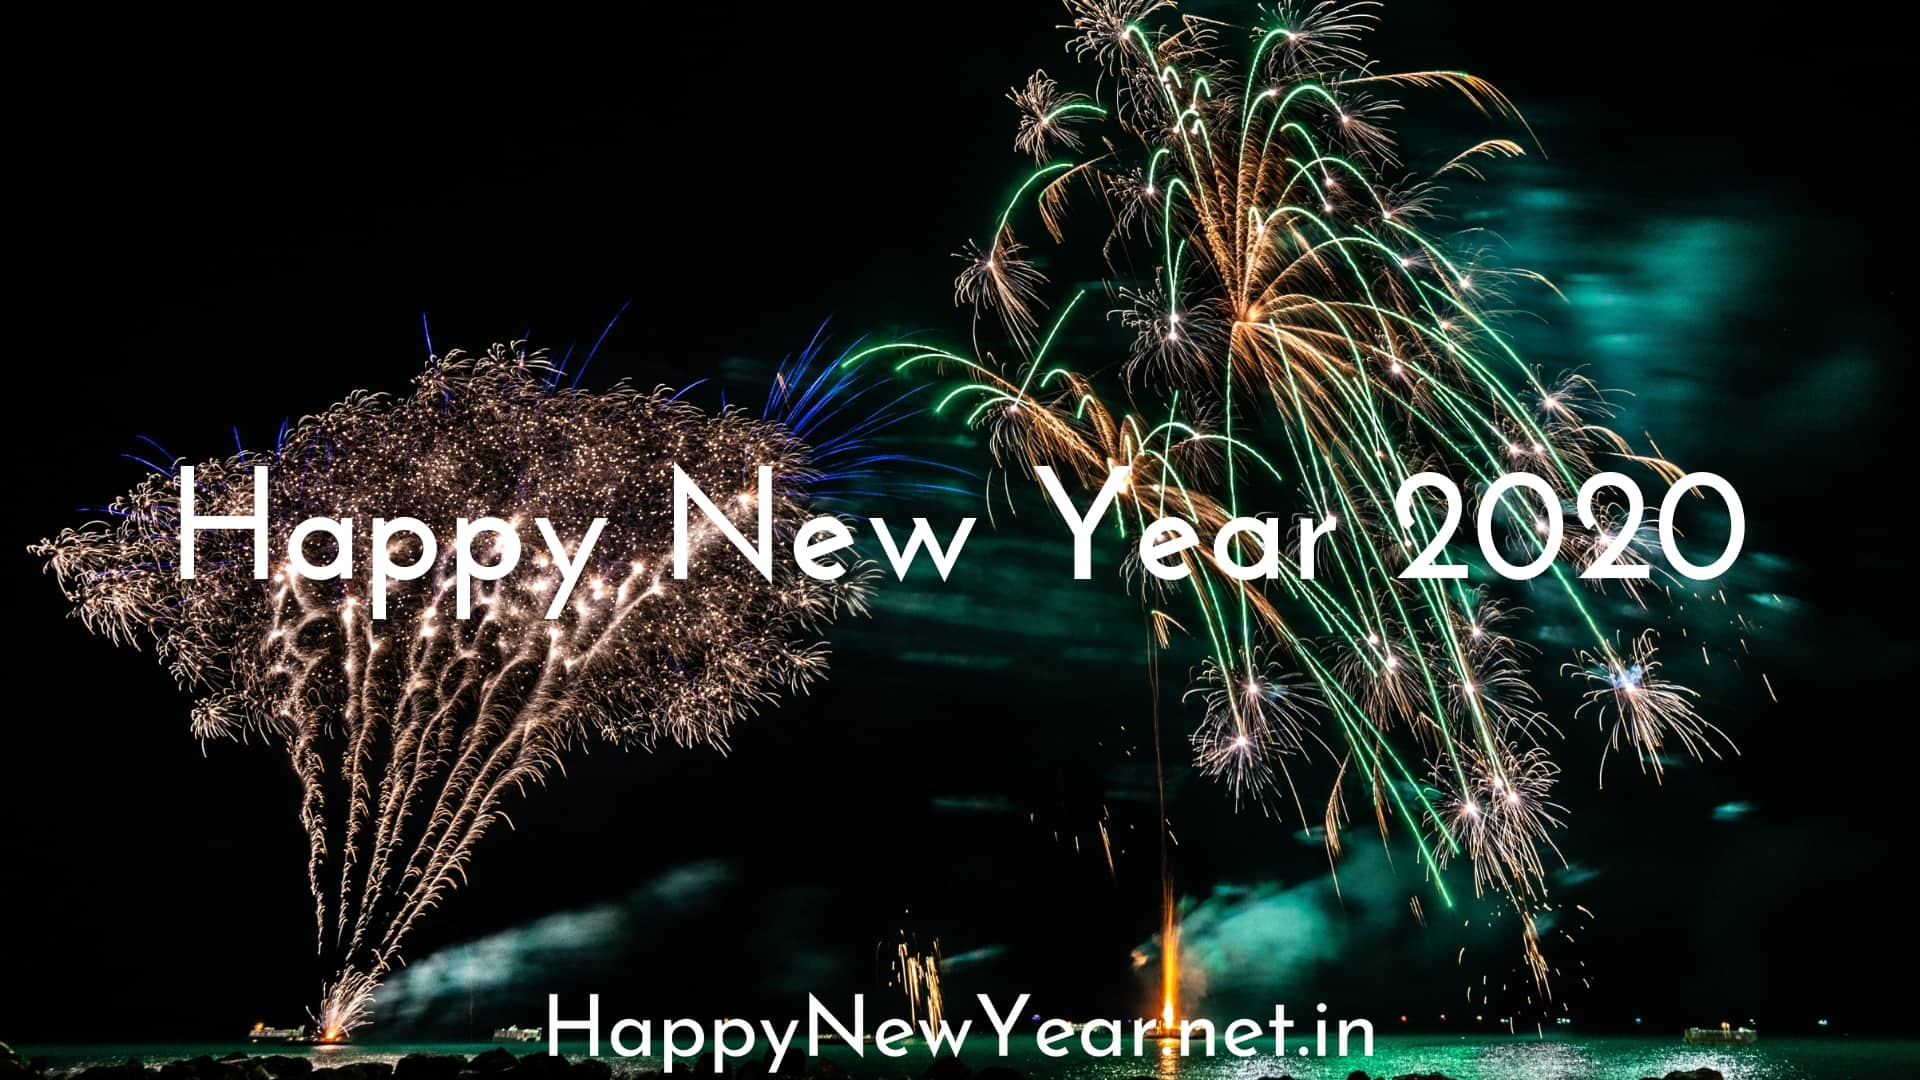 New Year 2020 Image & Pictures Download